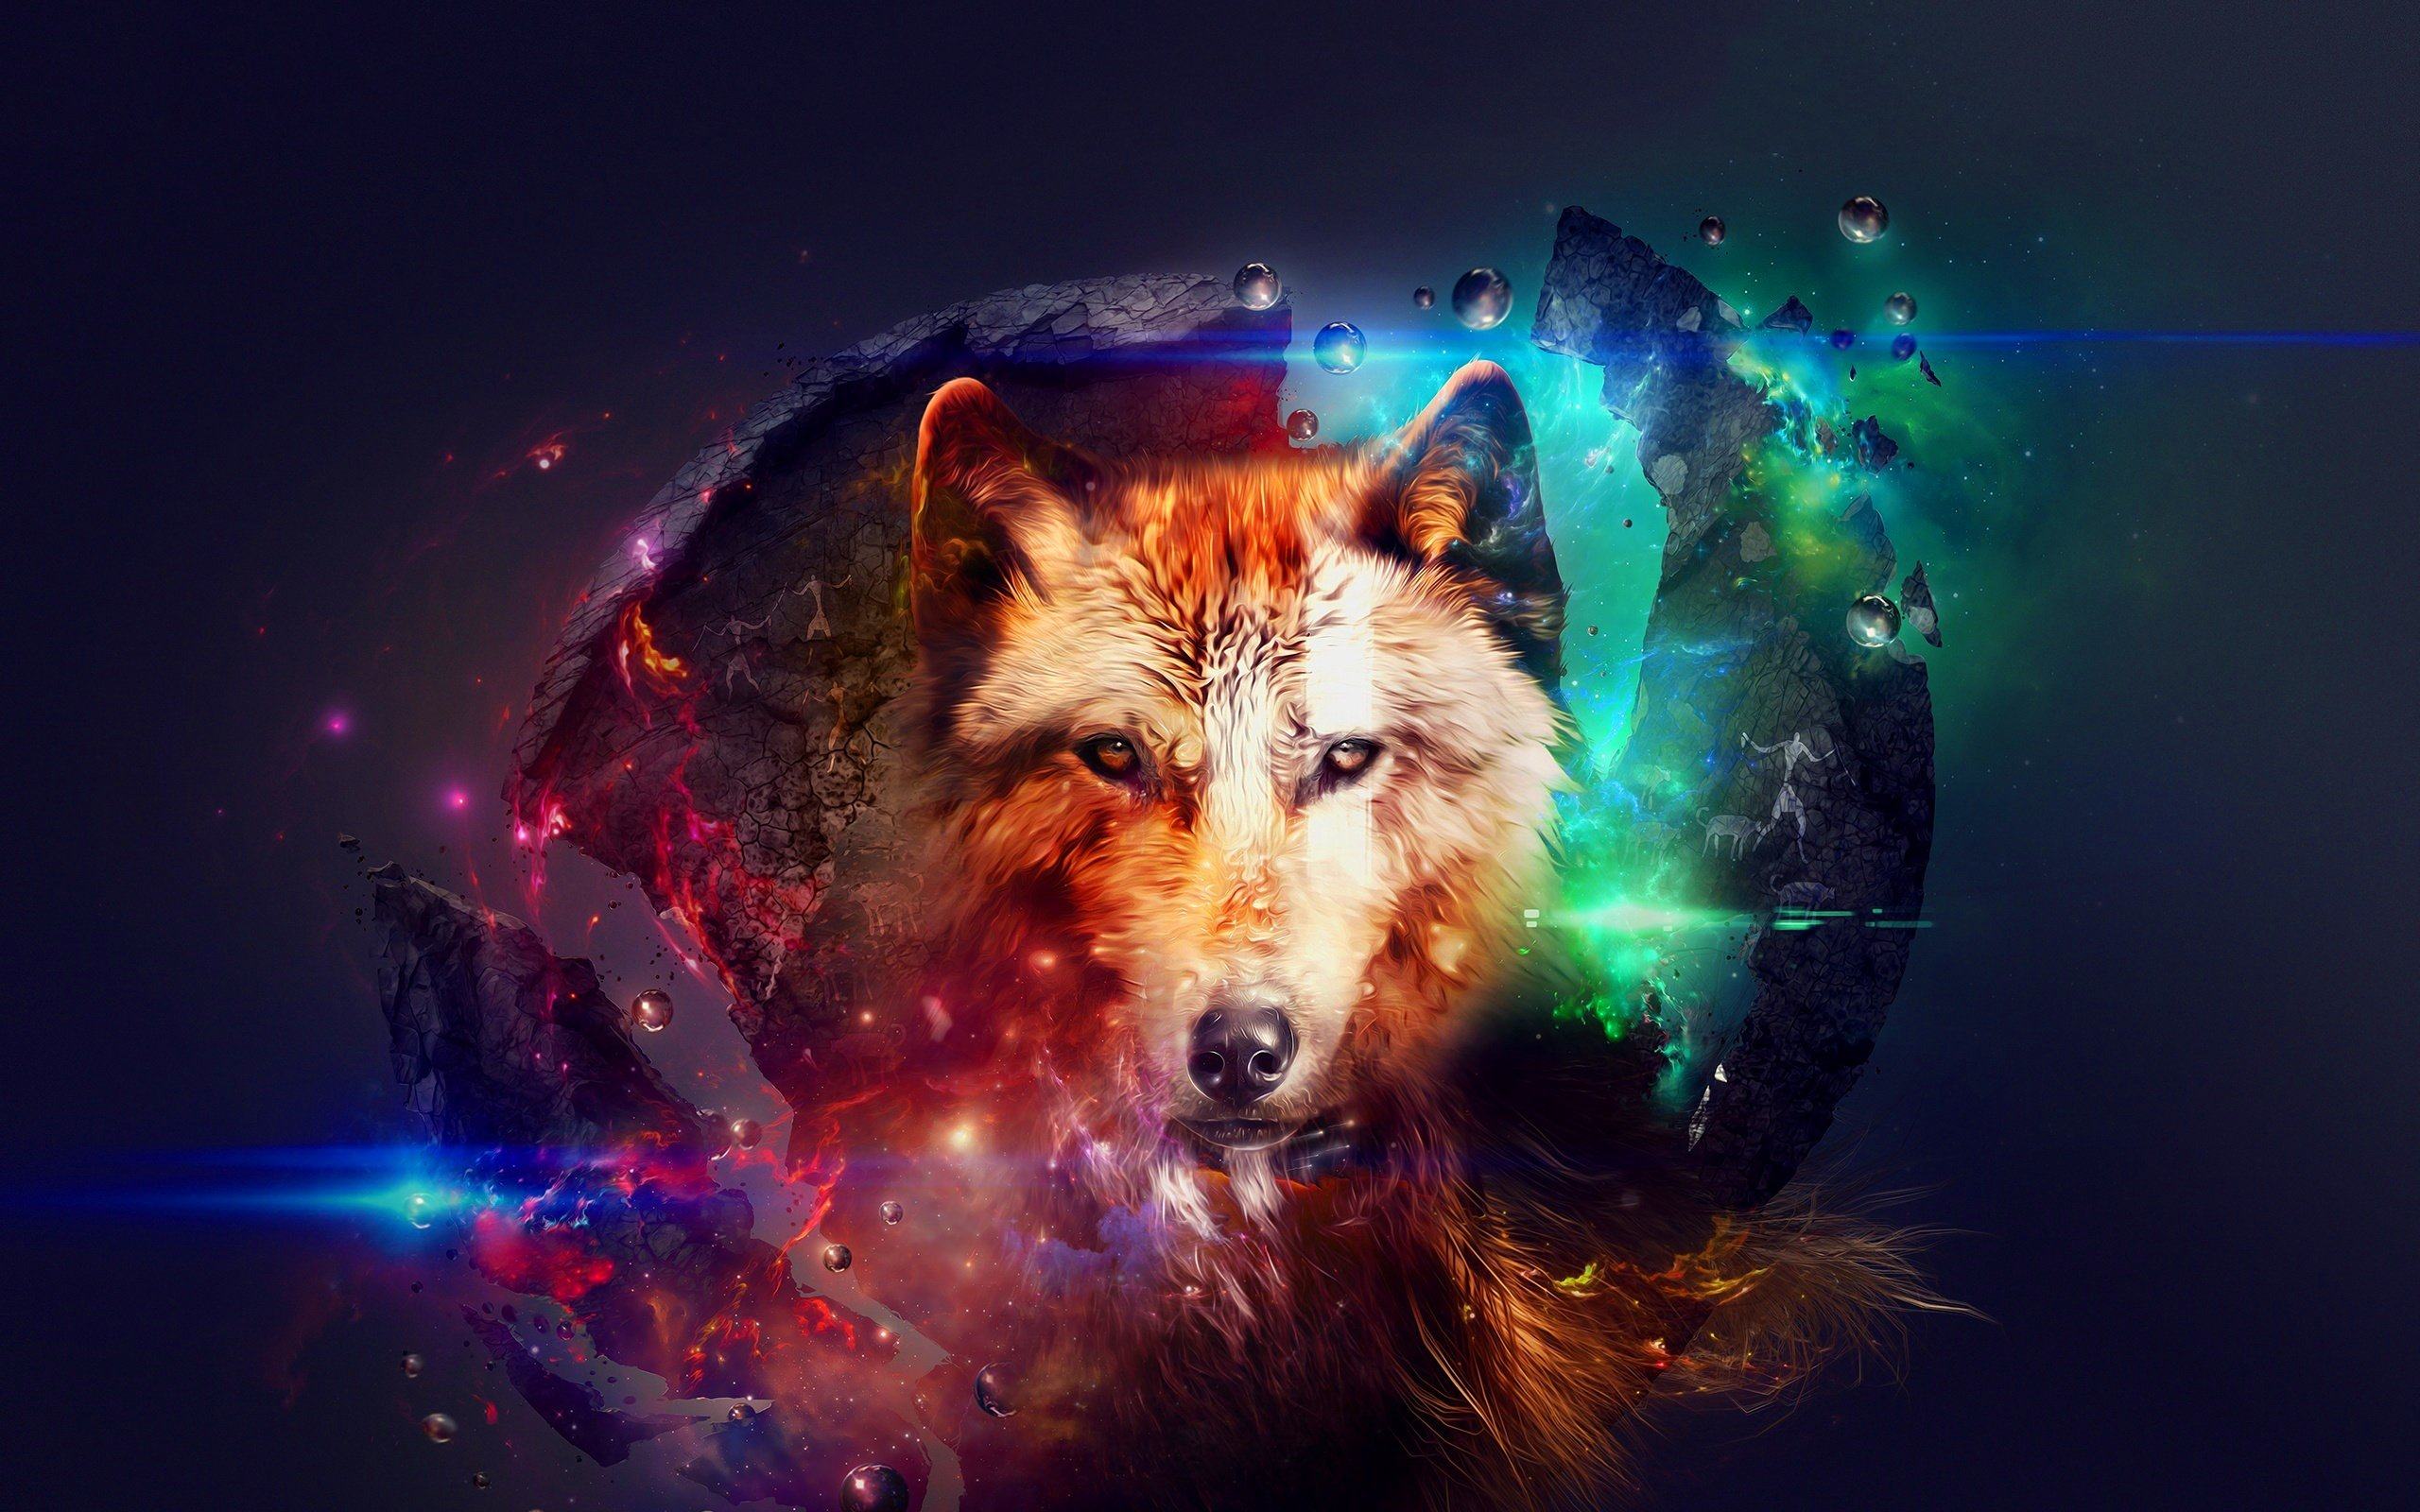 Galaxy Wolf Art Photos Images Pics Pictures Wallpapers image and 2560x1600